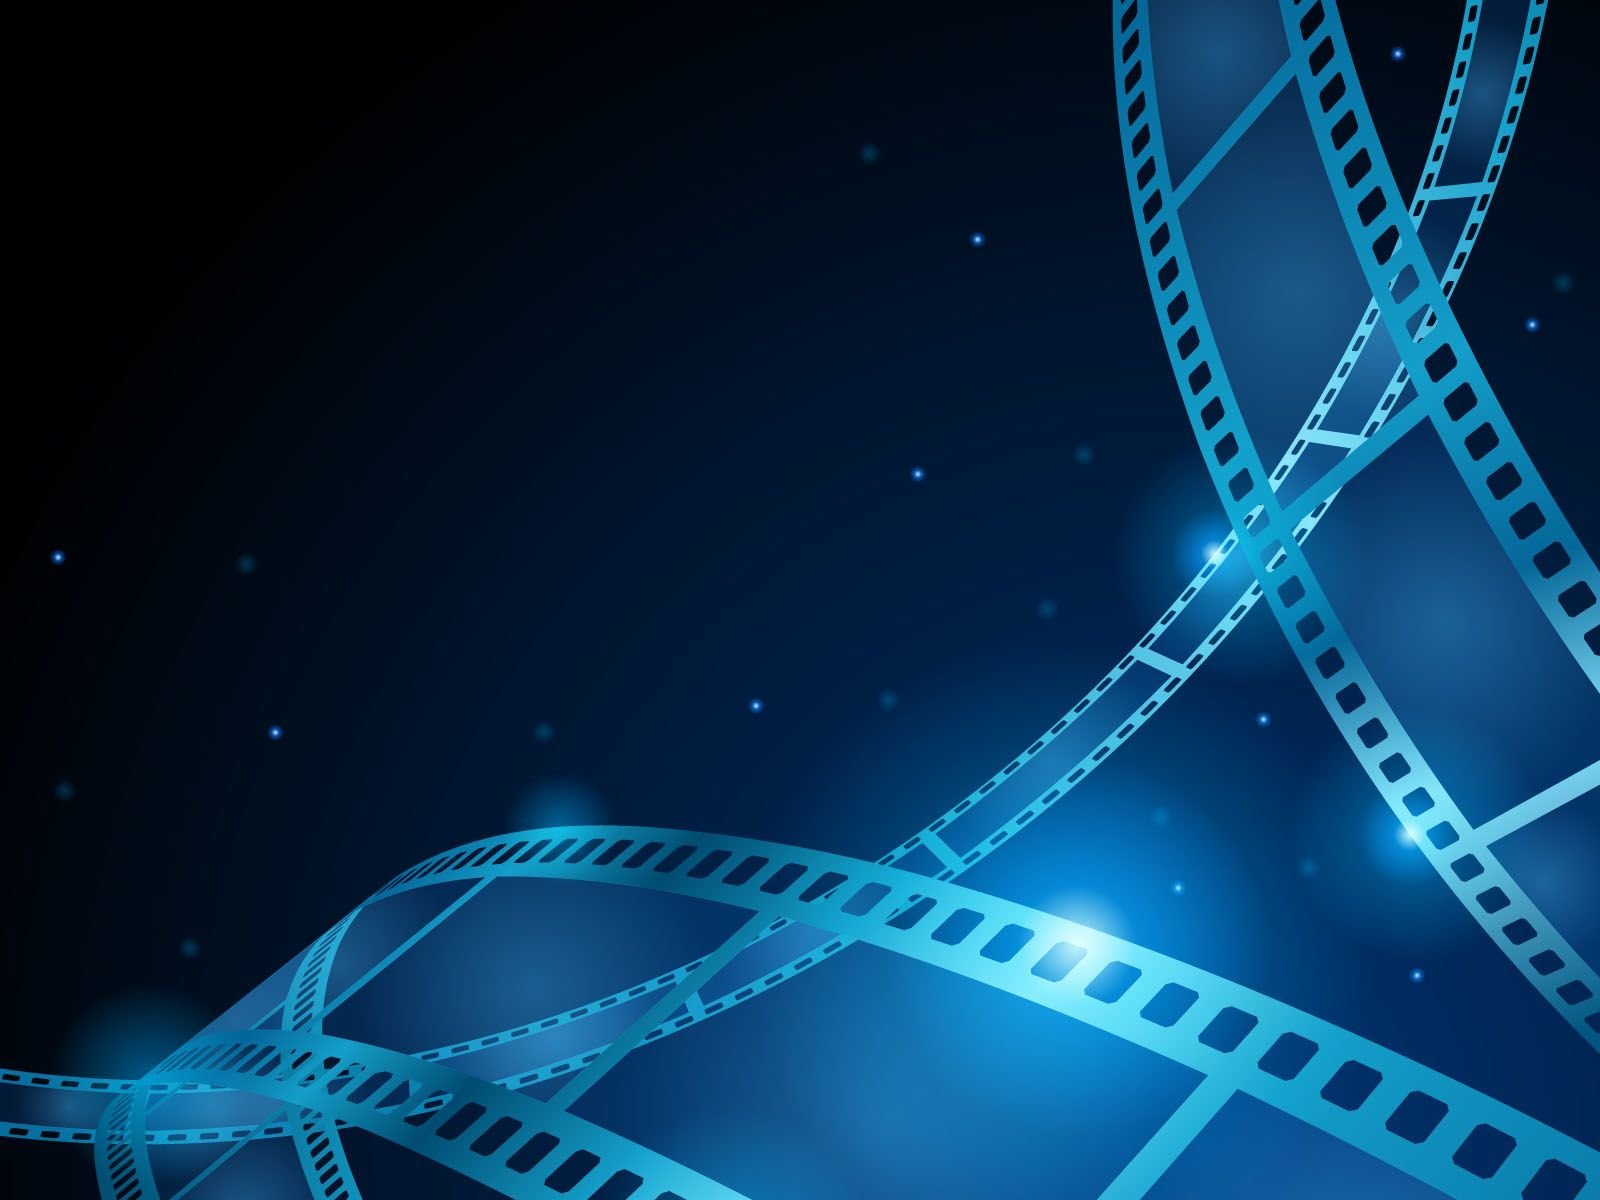 Blue movie, film strip PPT Backgrounds | Dark images ...